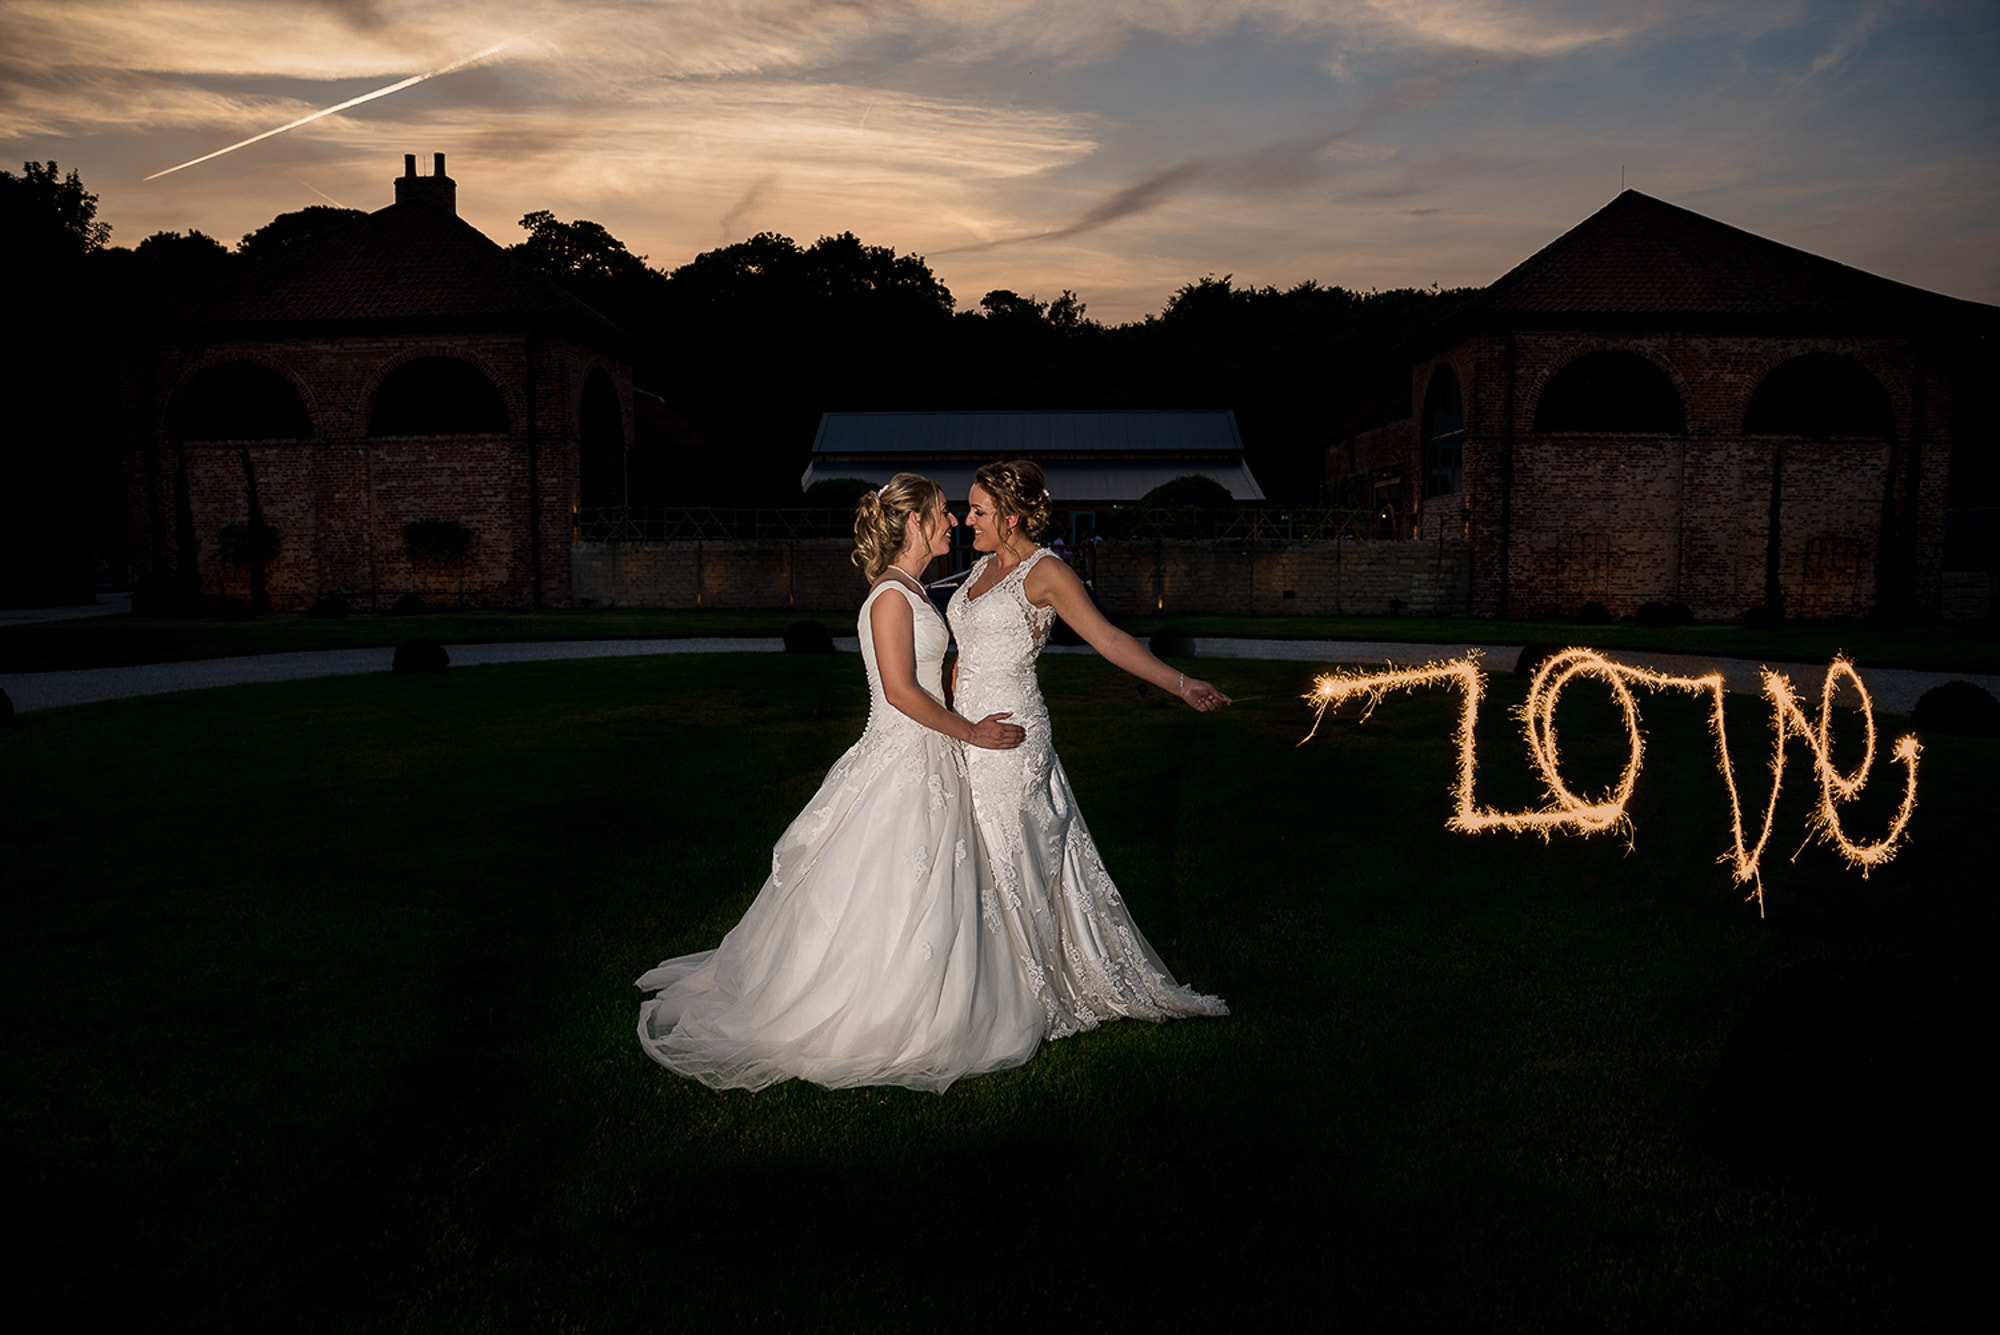 """Charlotte and Gemma, Hazel Gap Barn, Nottinghamshire - """"Alex photographed our wedding day in June 2017 on the hottest day of the year! He was very professional and captured so many special moments perfectly without being imposing or bossy. We think of Alex as being one of our guests at our wedding as he got on really well with all our friends and family, which meant that he was able to take very natural photographs. We couldn't have asked for better memories of our wedding day and we cannot recommend him highly enough. Thanks again Alex!"""""""